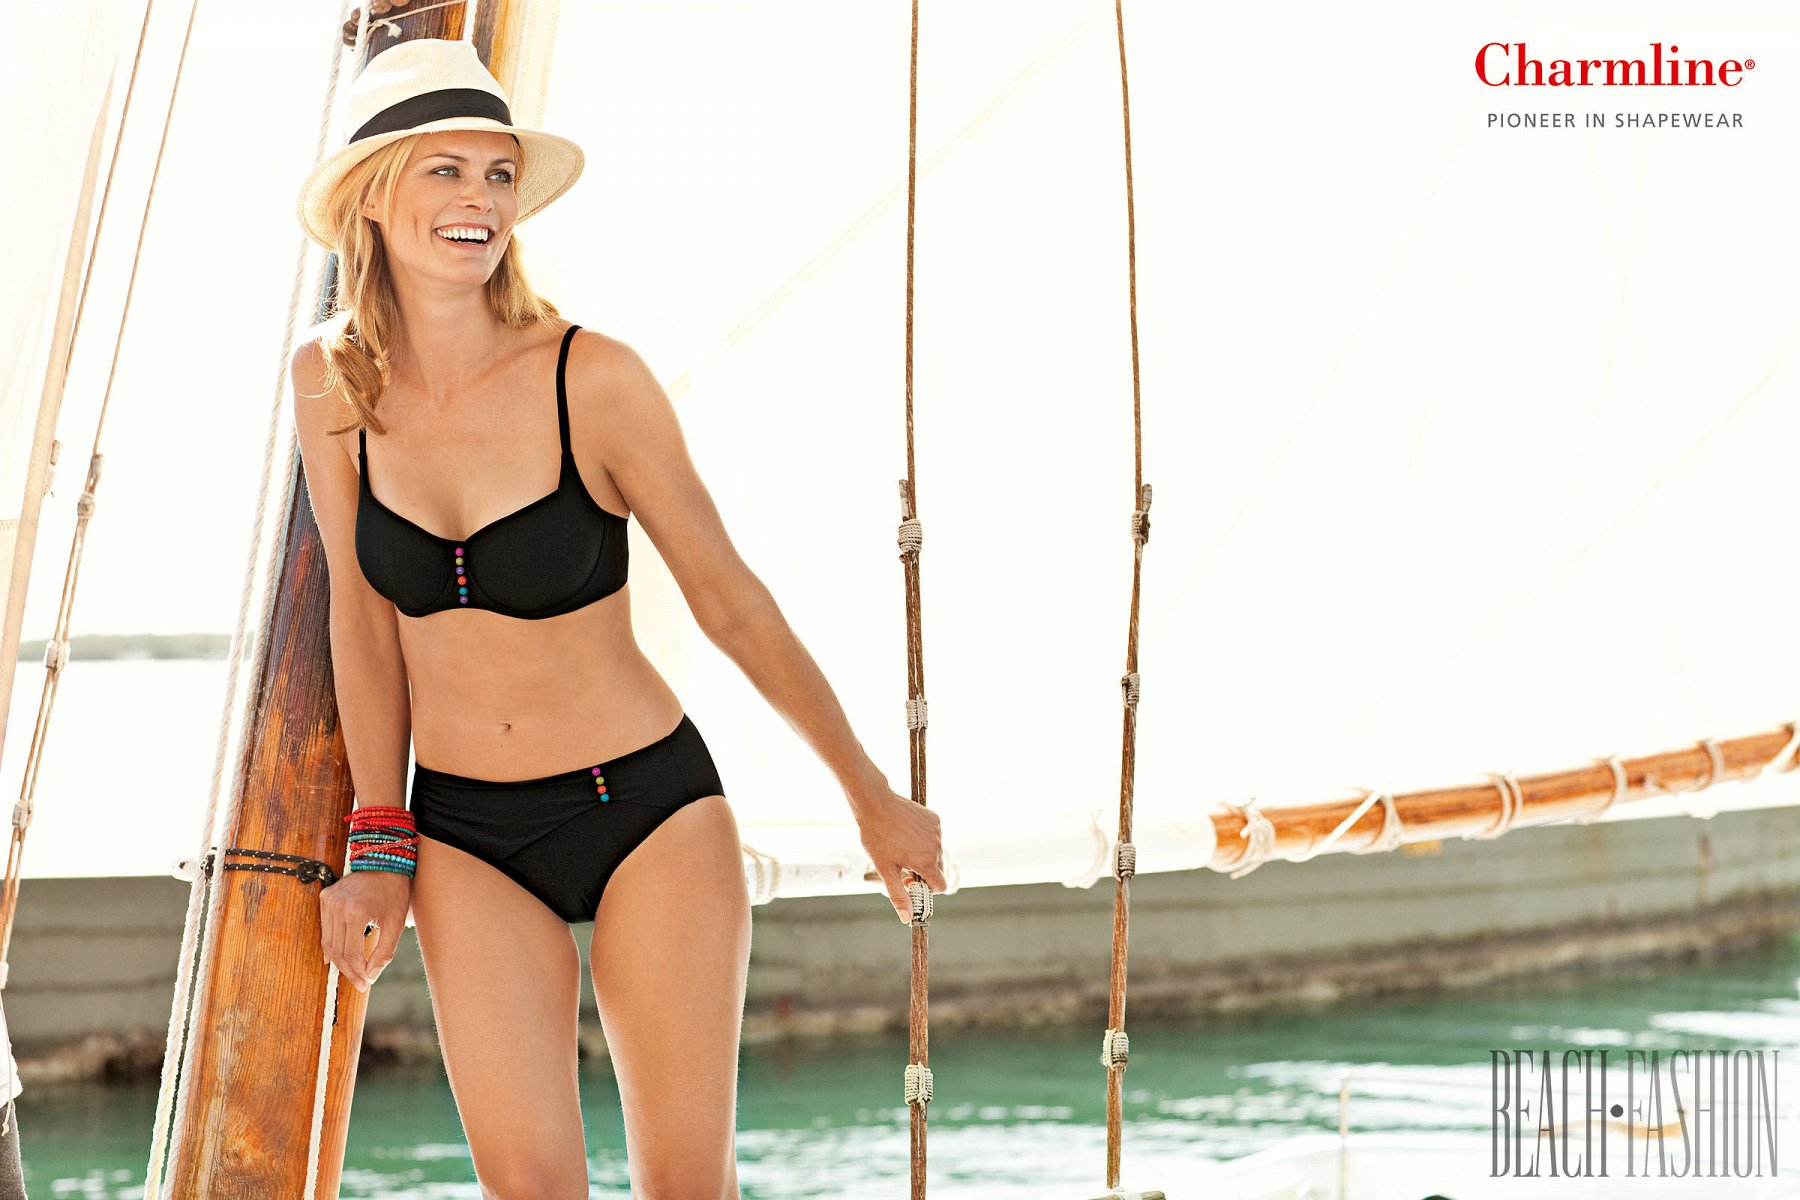 Charmline 2013 collection - Swimwear - 1